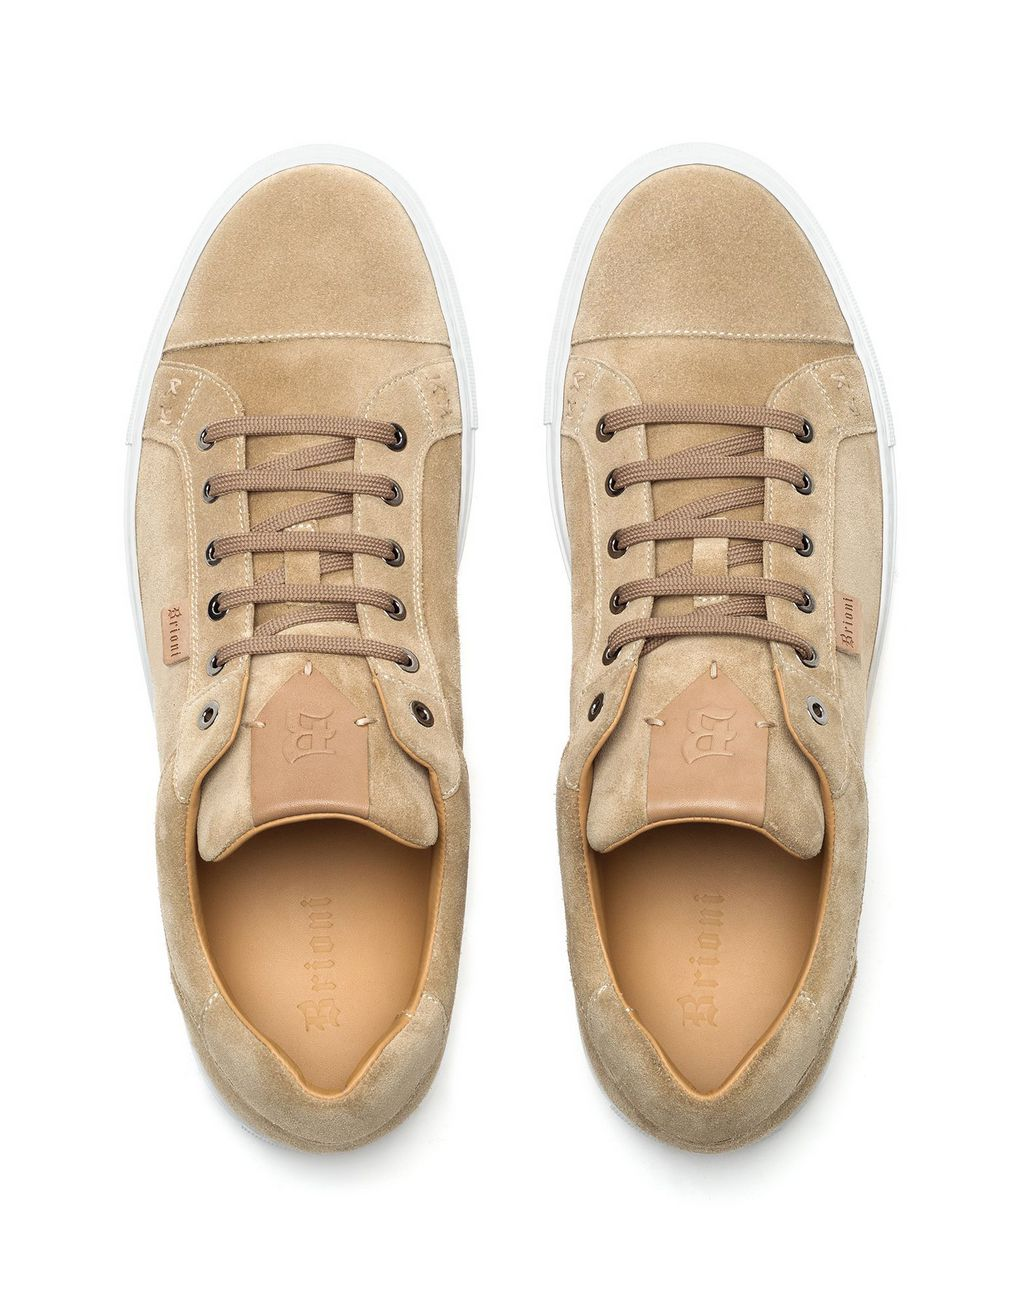 BRIONI Sneakers Beige in Pelle Scamosciata Sneaker [*** pickupInStoreShippingNotGuaranteed_info ***] r